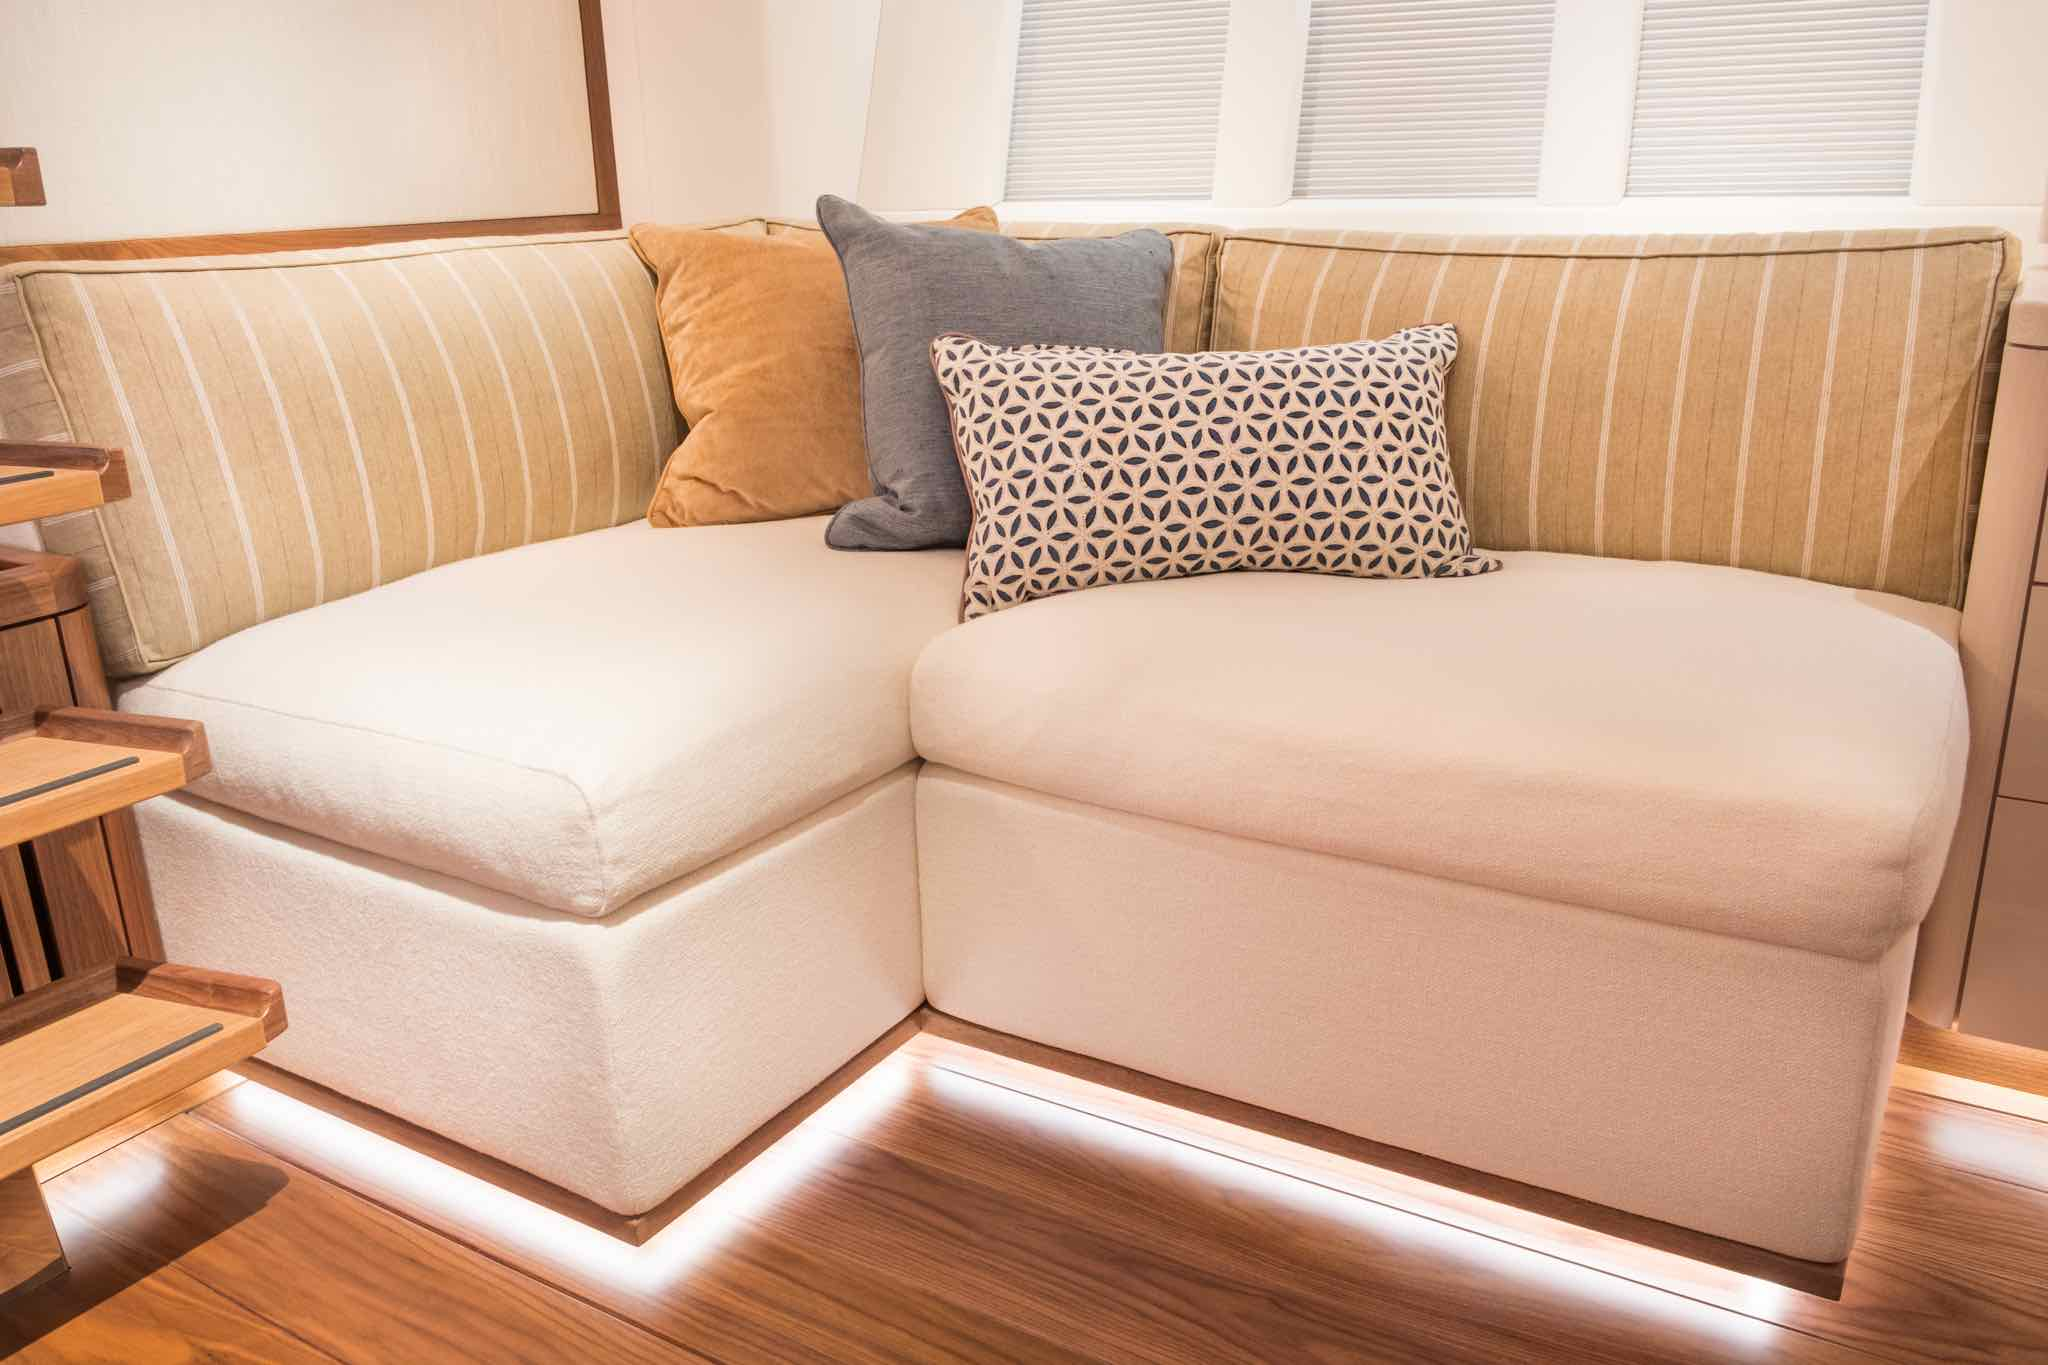 Owners Cabin Yacht Seating